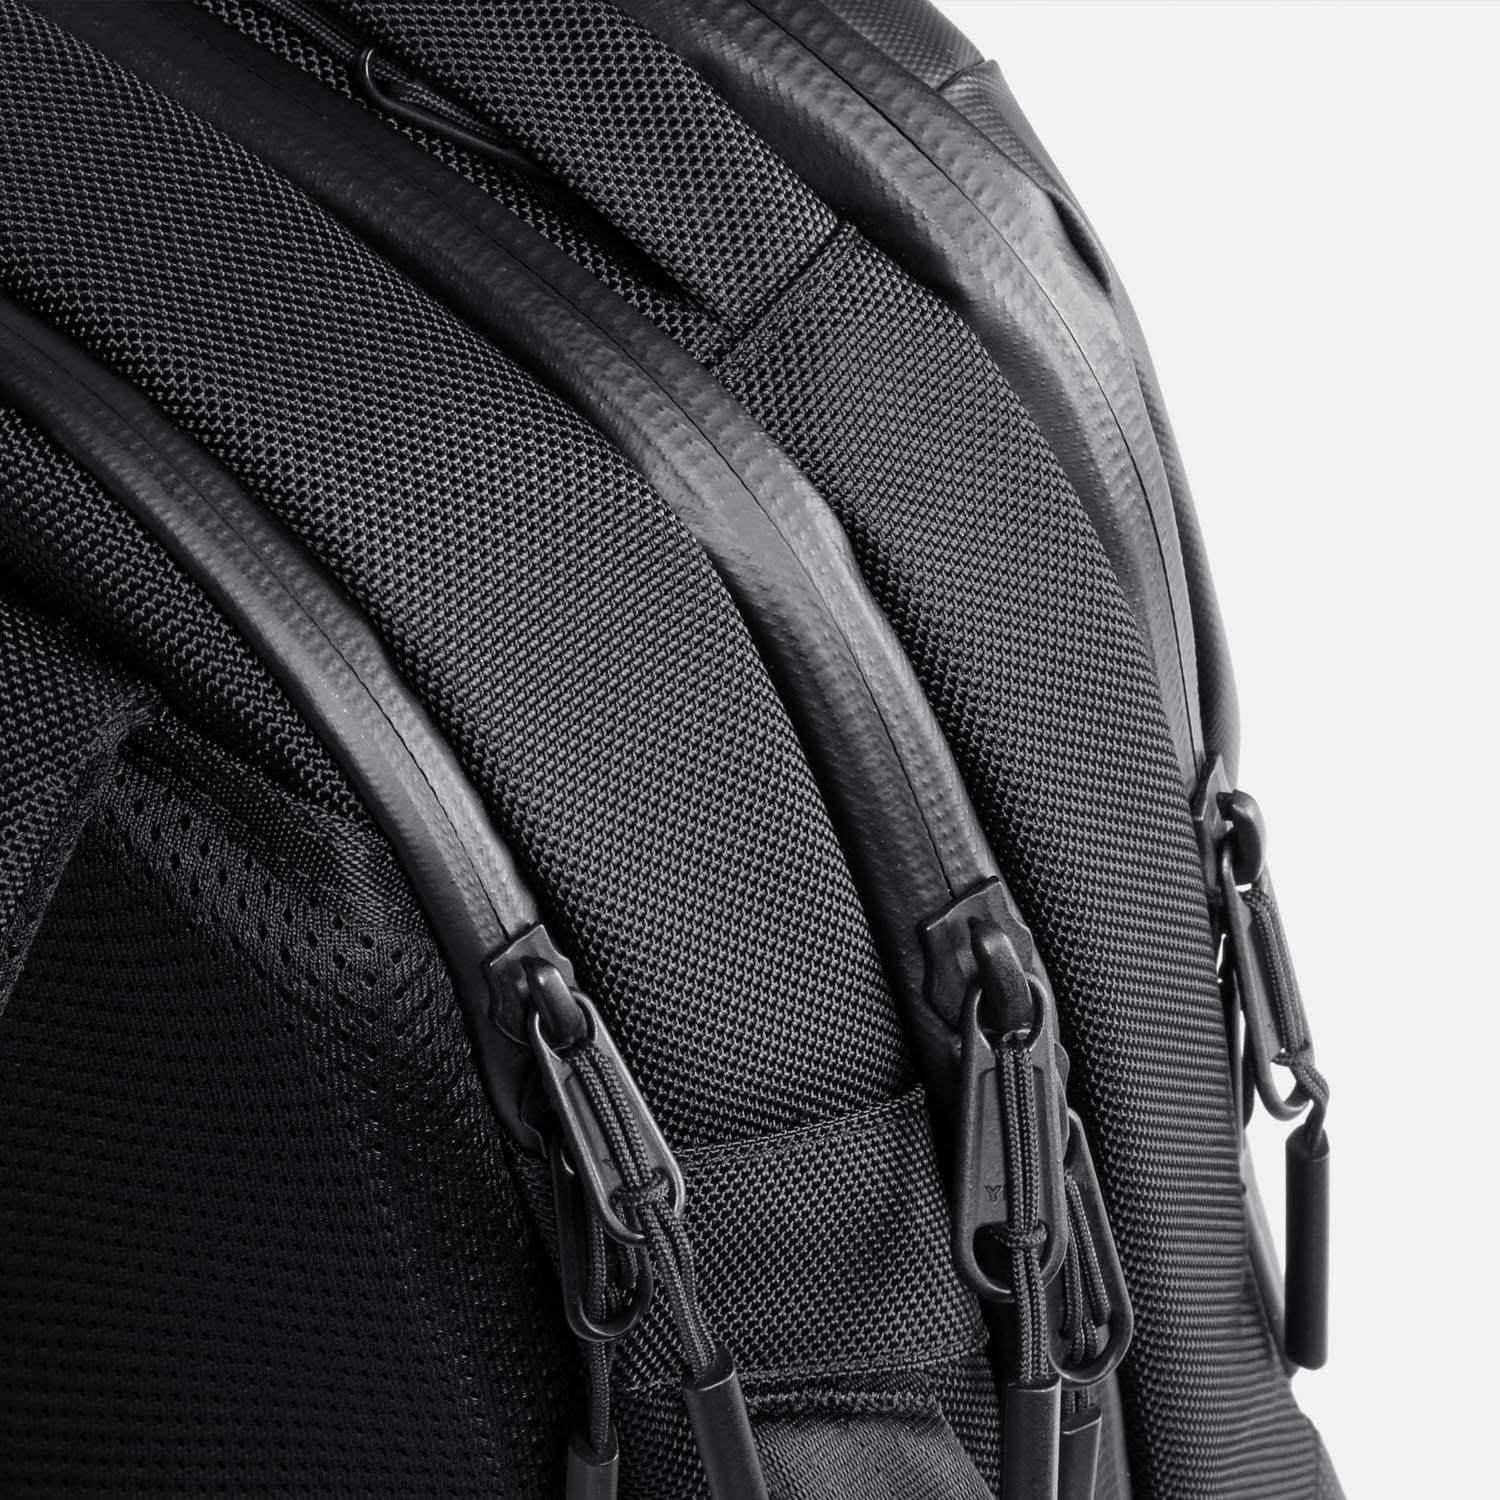 YKK® AquaGuard® zippers keep your gear dry and protected.